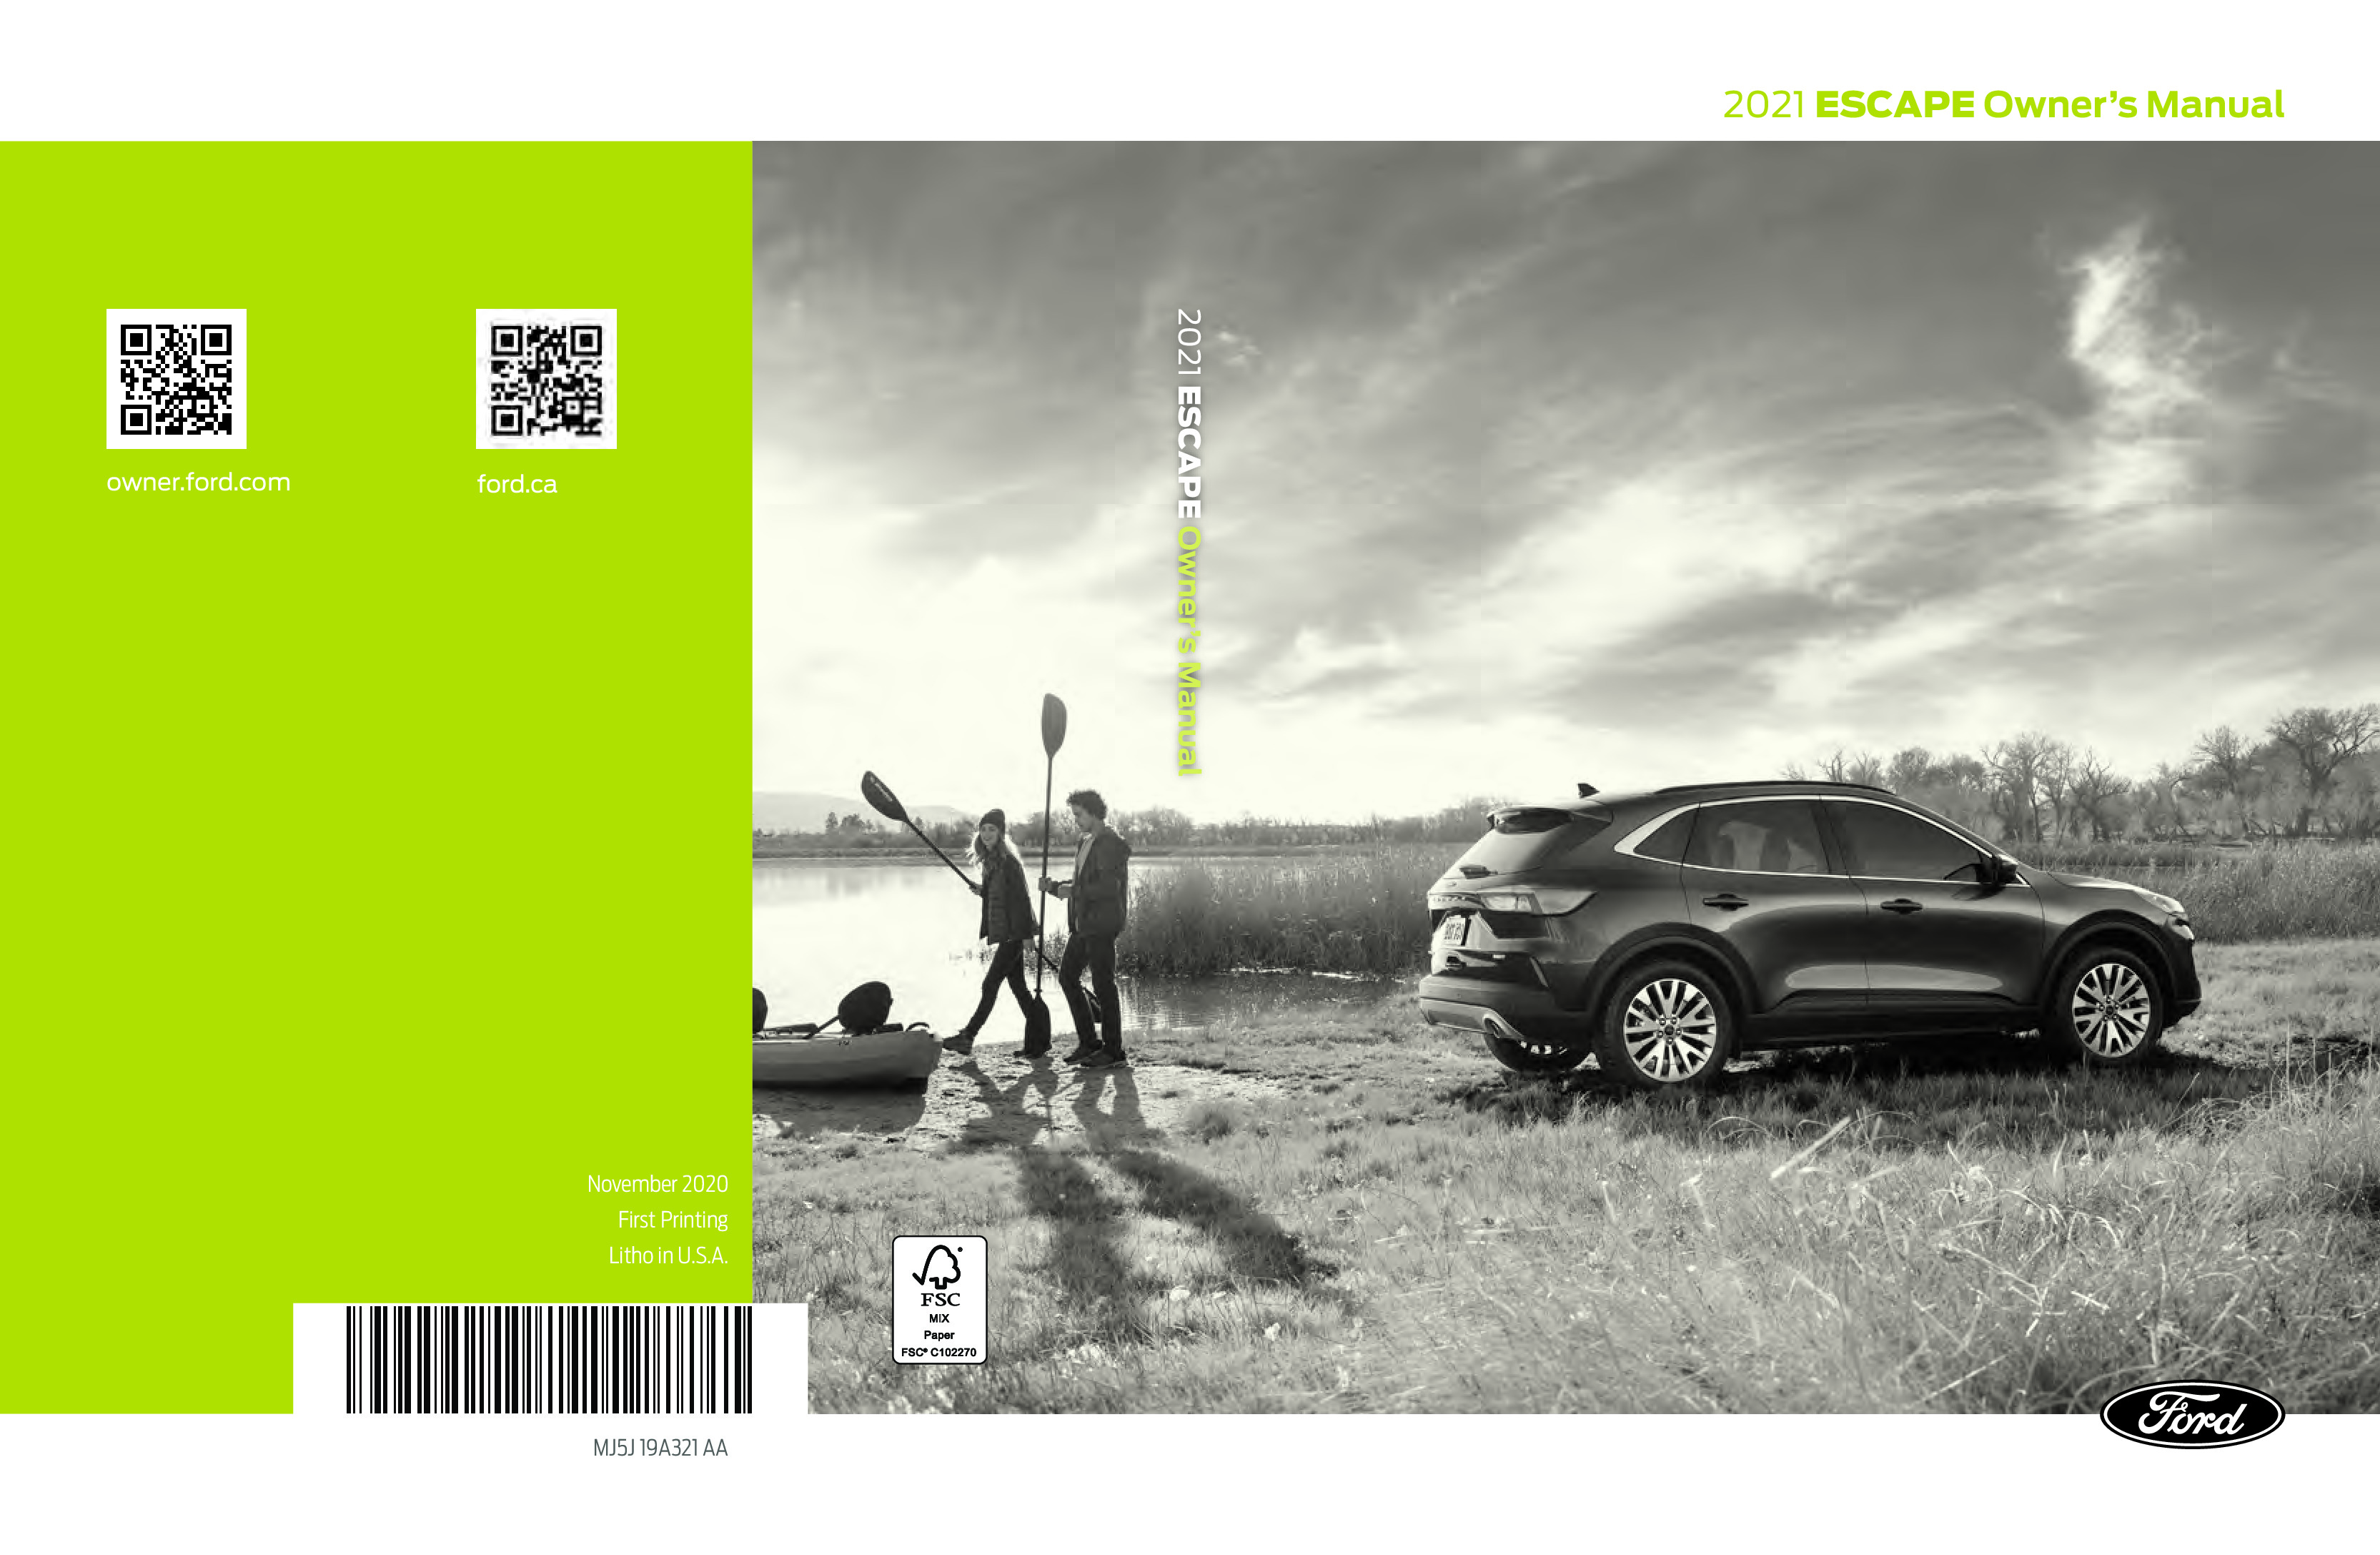 2021 Ford Escape owners manual